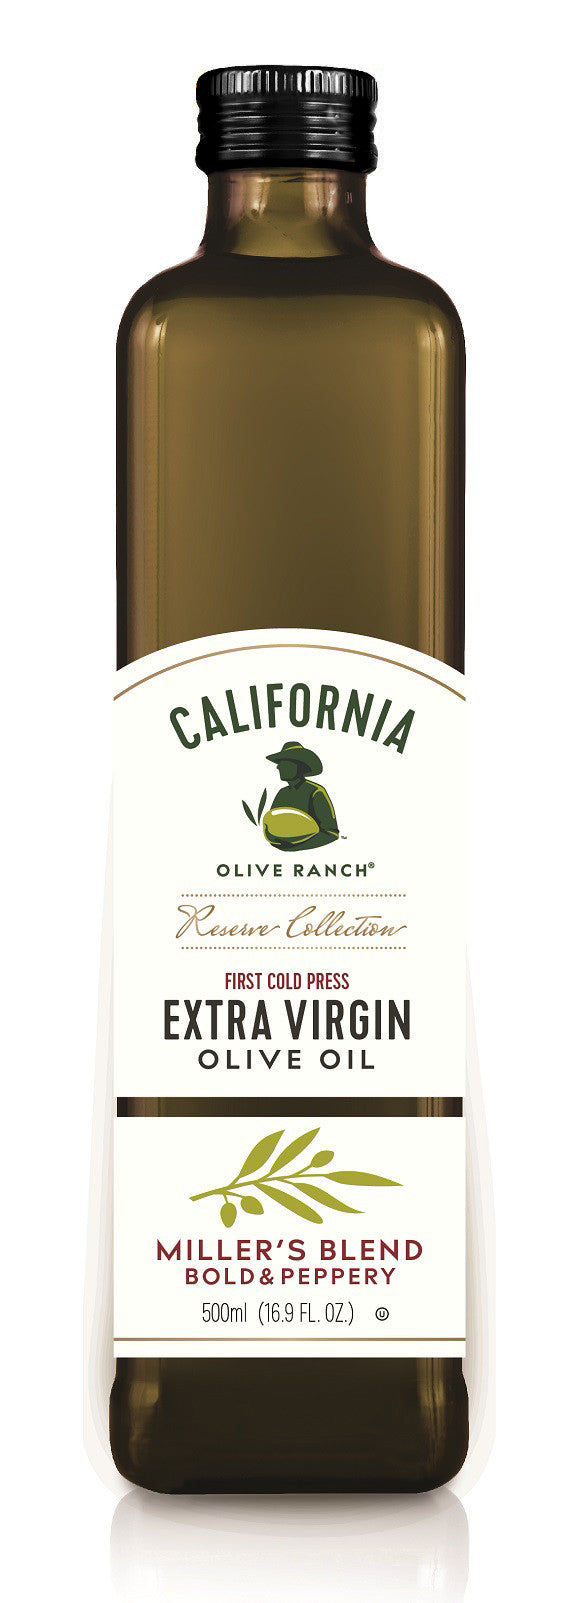 California Olive Ranch Reserve Collection Miller's Blend Extra Virgin Olive Oil, 16.9 FO (Pack of 6)